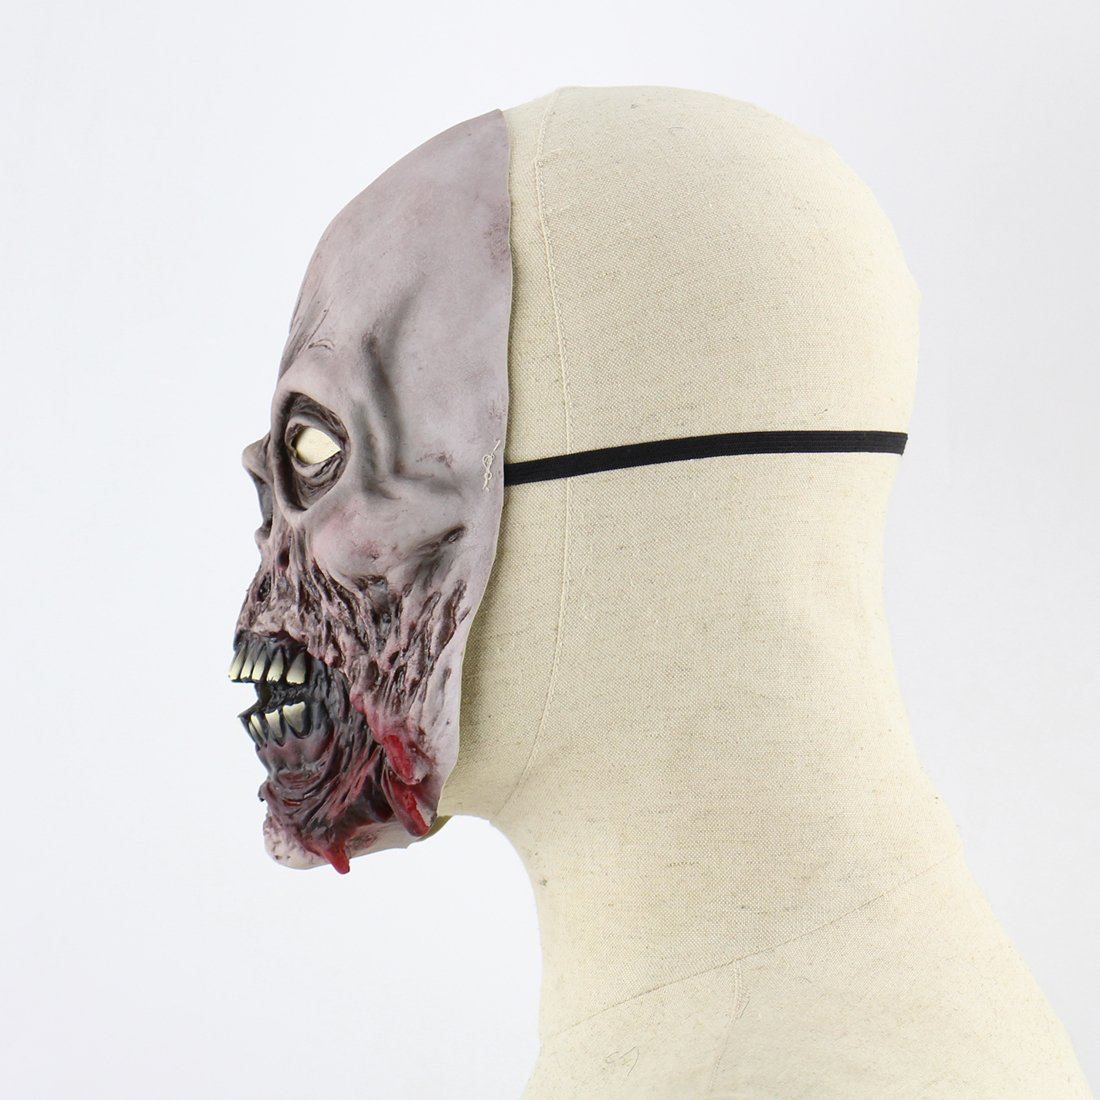 Hophen Horror Halloween Rot Face Mask Props Scary Latex Mask